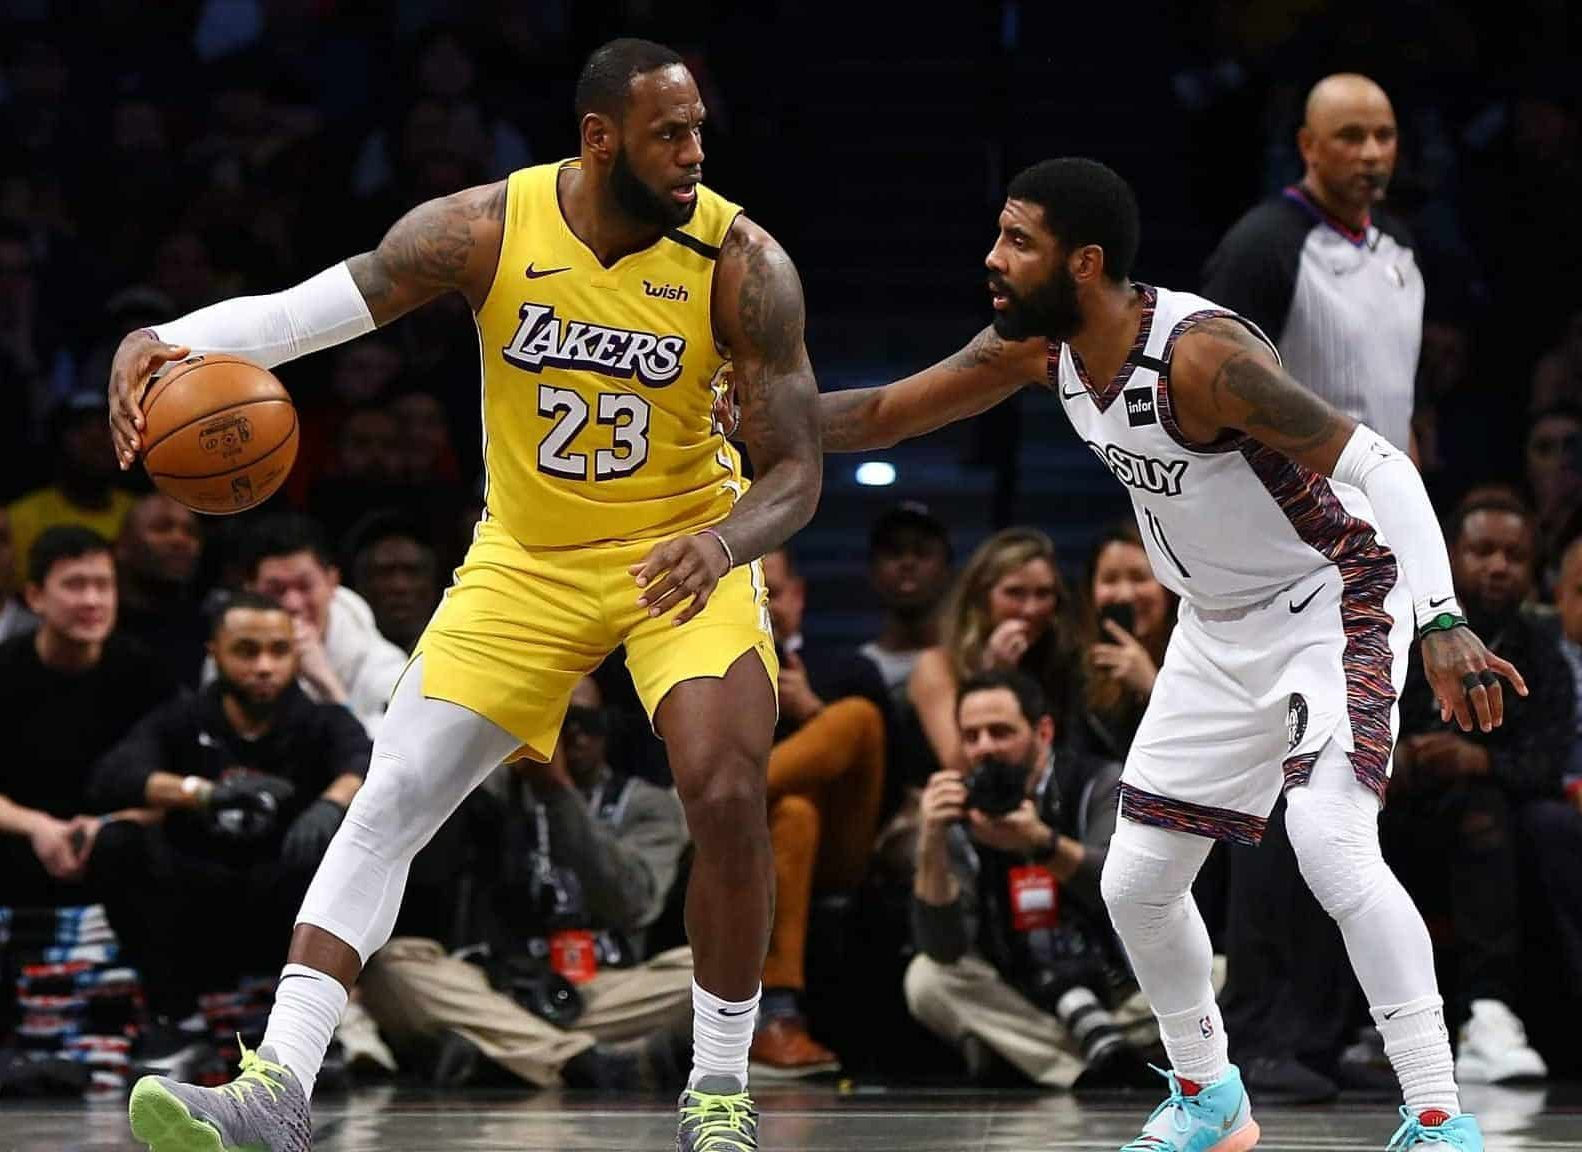 Possible finals preview - nets vs Lakers